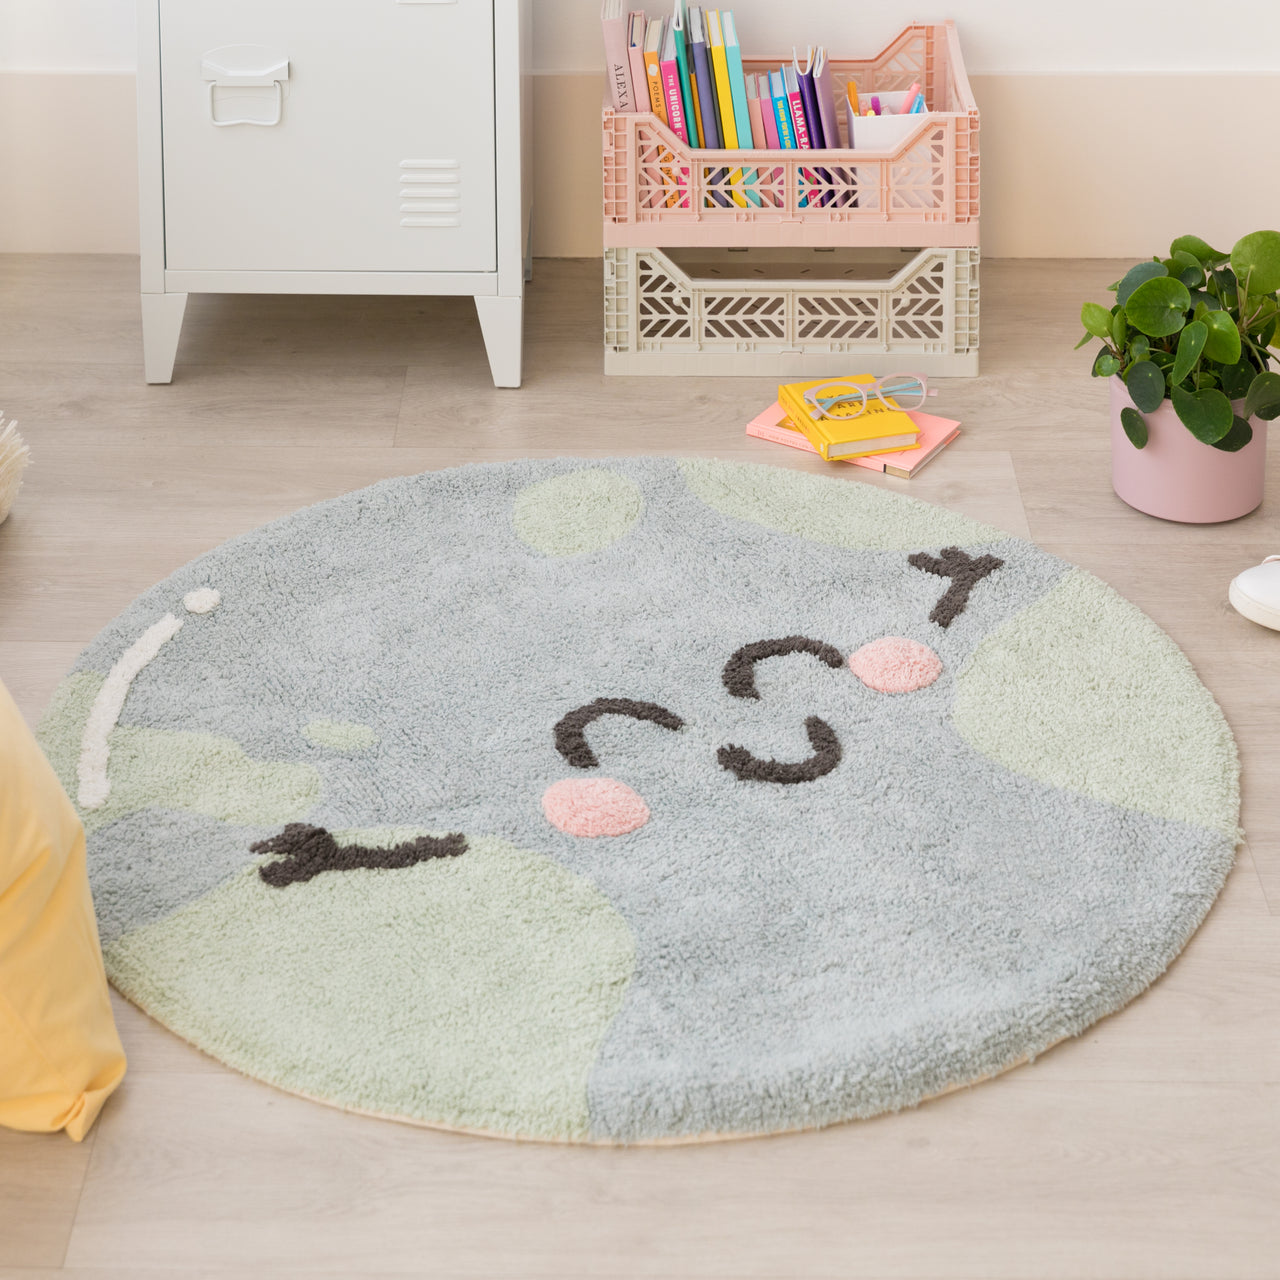 This friendly, smiling Earth rug from Lorena Canals is a cute reminder that we must take care of our planet and enviroment. With this beautiful Rug, you can decorate your children's room with a modern and elegant style! 97% cotton, 3 % other fibres, round and machine-washable (conventional washing machine with 6 kg capacity), its design and neutral colours is a hit among the boys and girls.